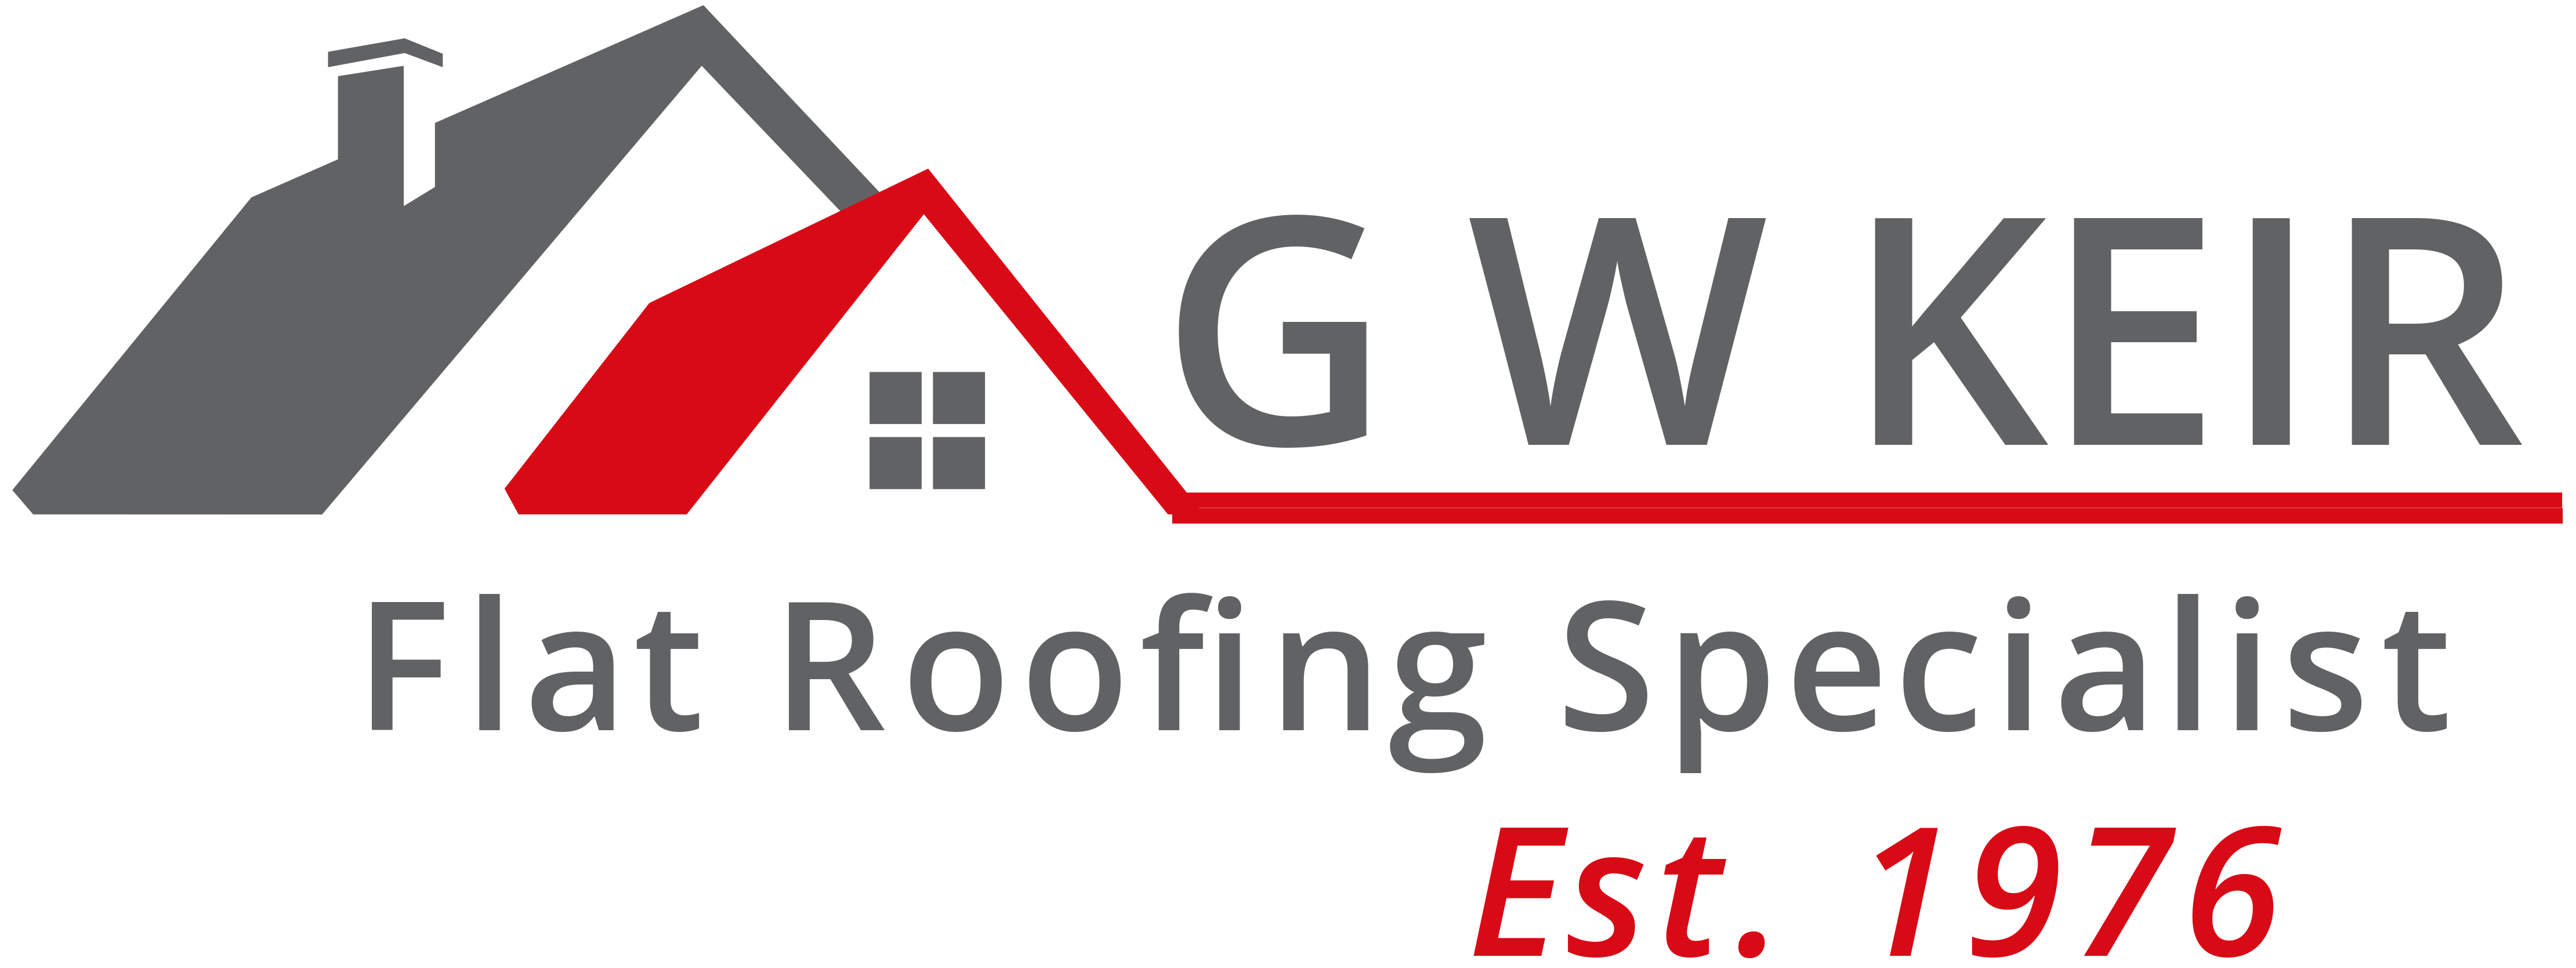 G W Keir Roofing – Roof Replacement, Repair & Maintenance